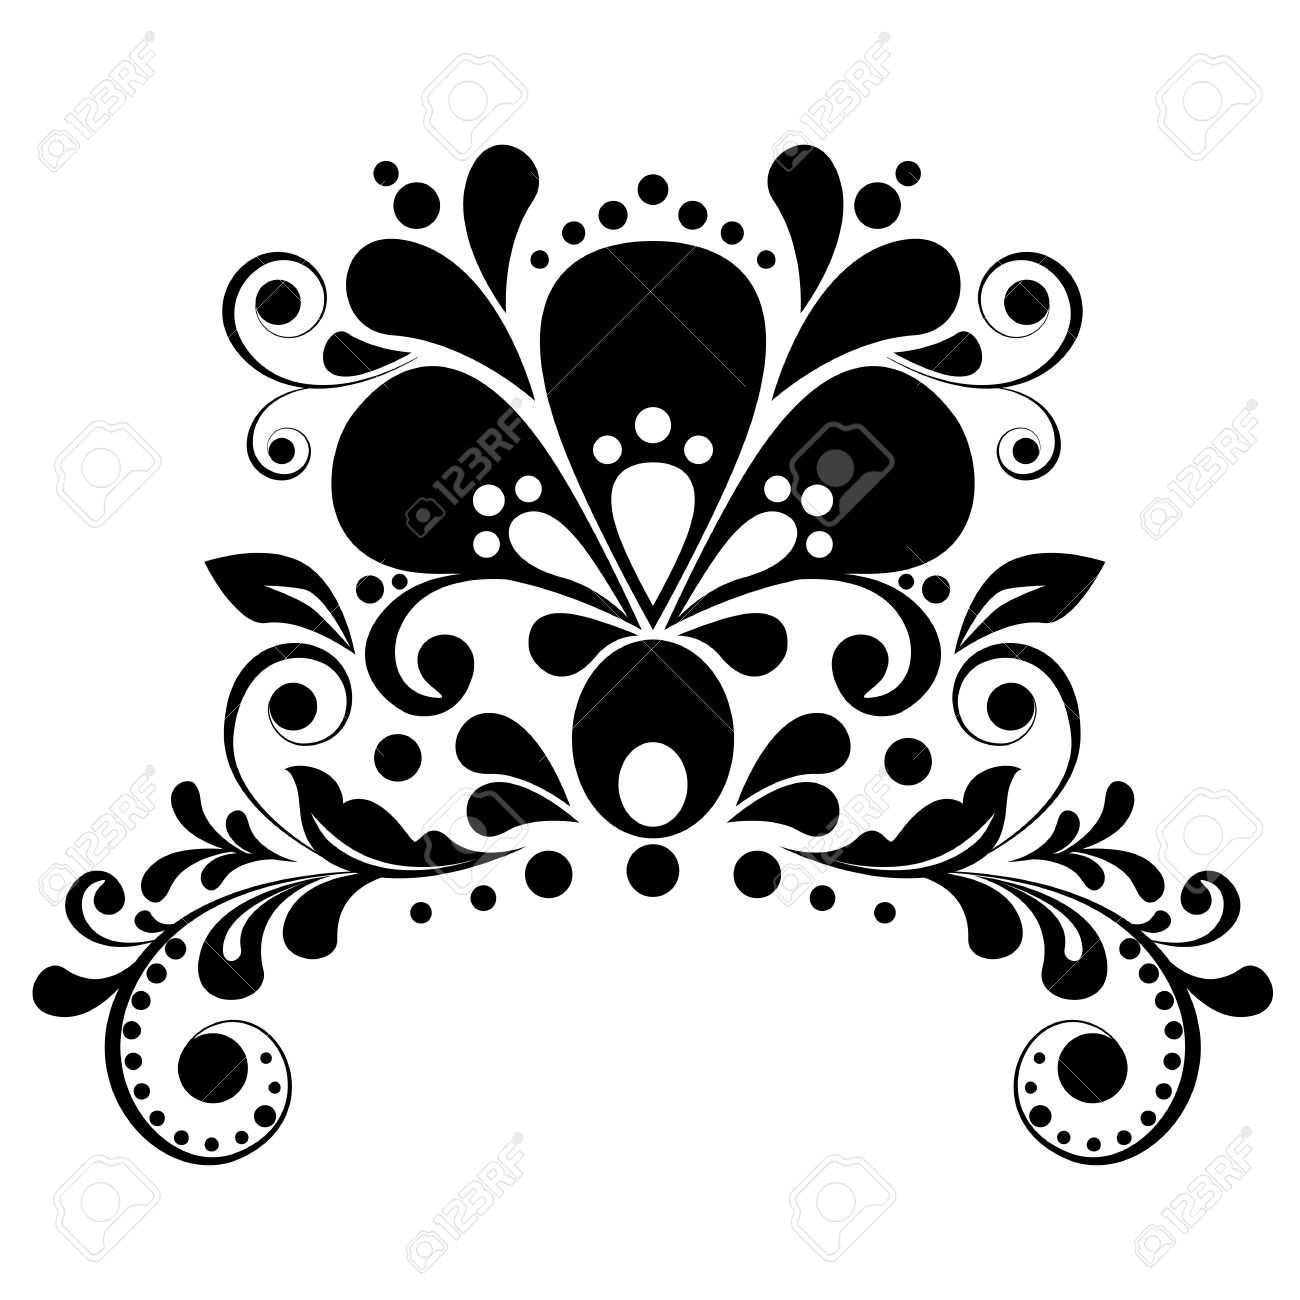 elegant floral design element royalty free cliparts vectors and